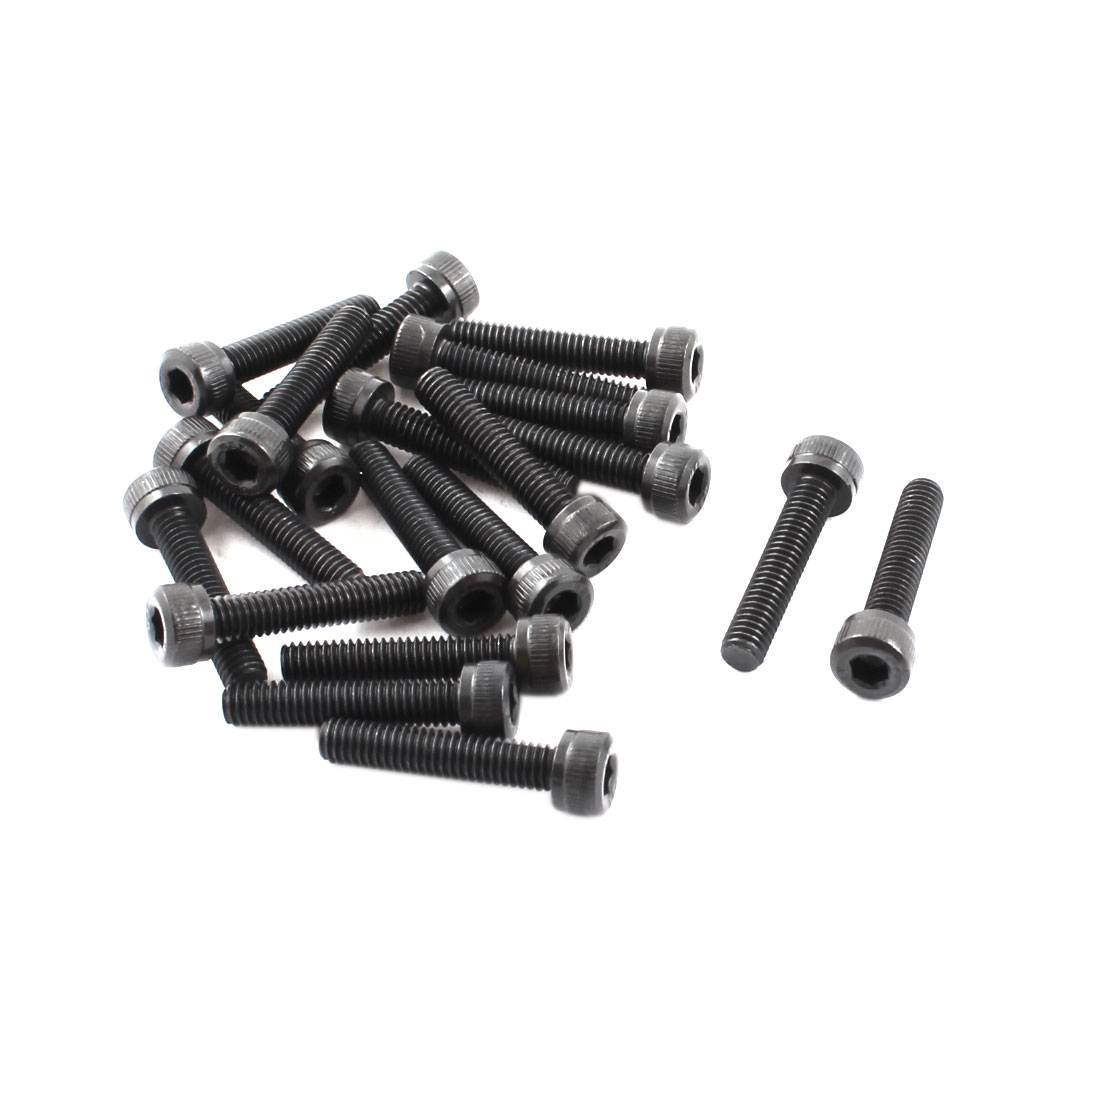 20Pcs Stainless Steel Countersunk Hex Socket Knurled Bolt Screw M4x20mm Black